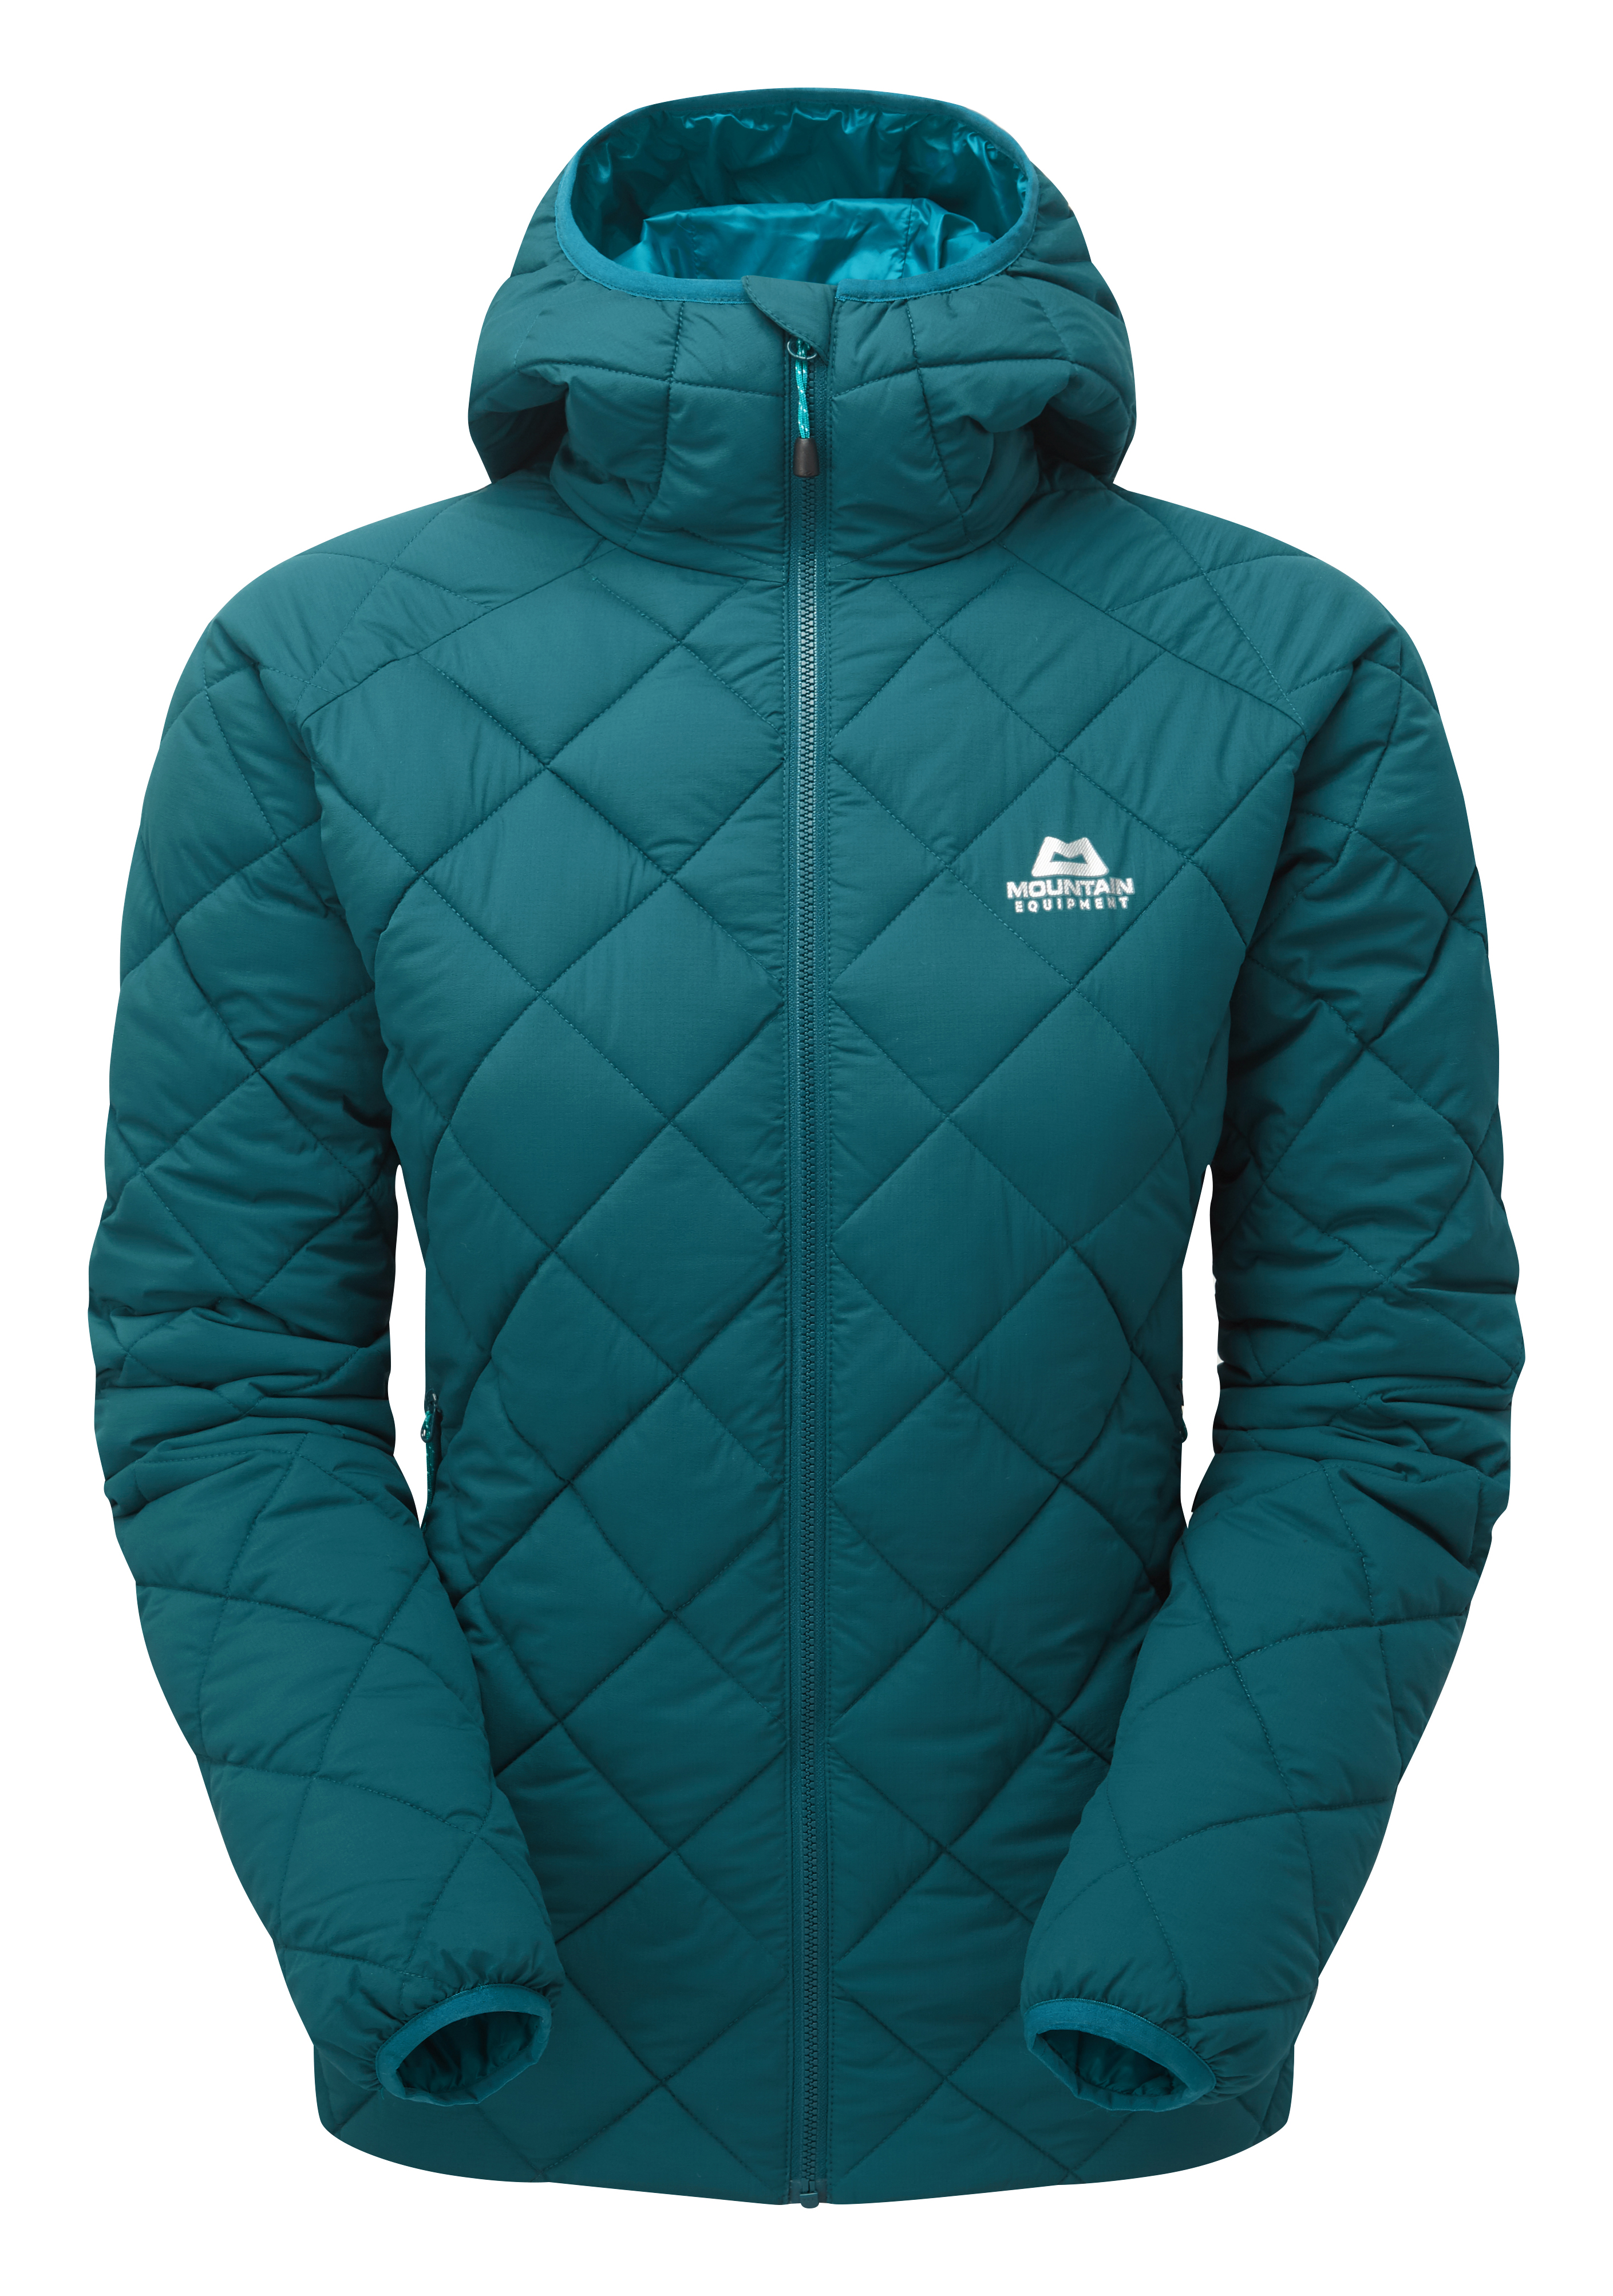 ef83a4c701a Mountain Equipment | Womens | Fuse | Jacket | Legion Blue £90.00